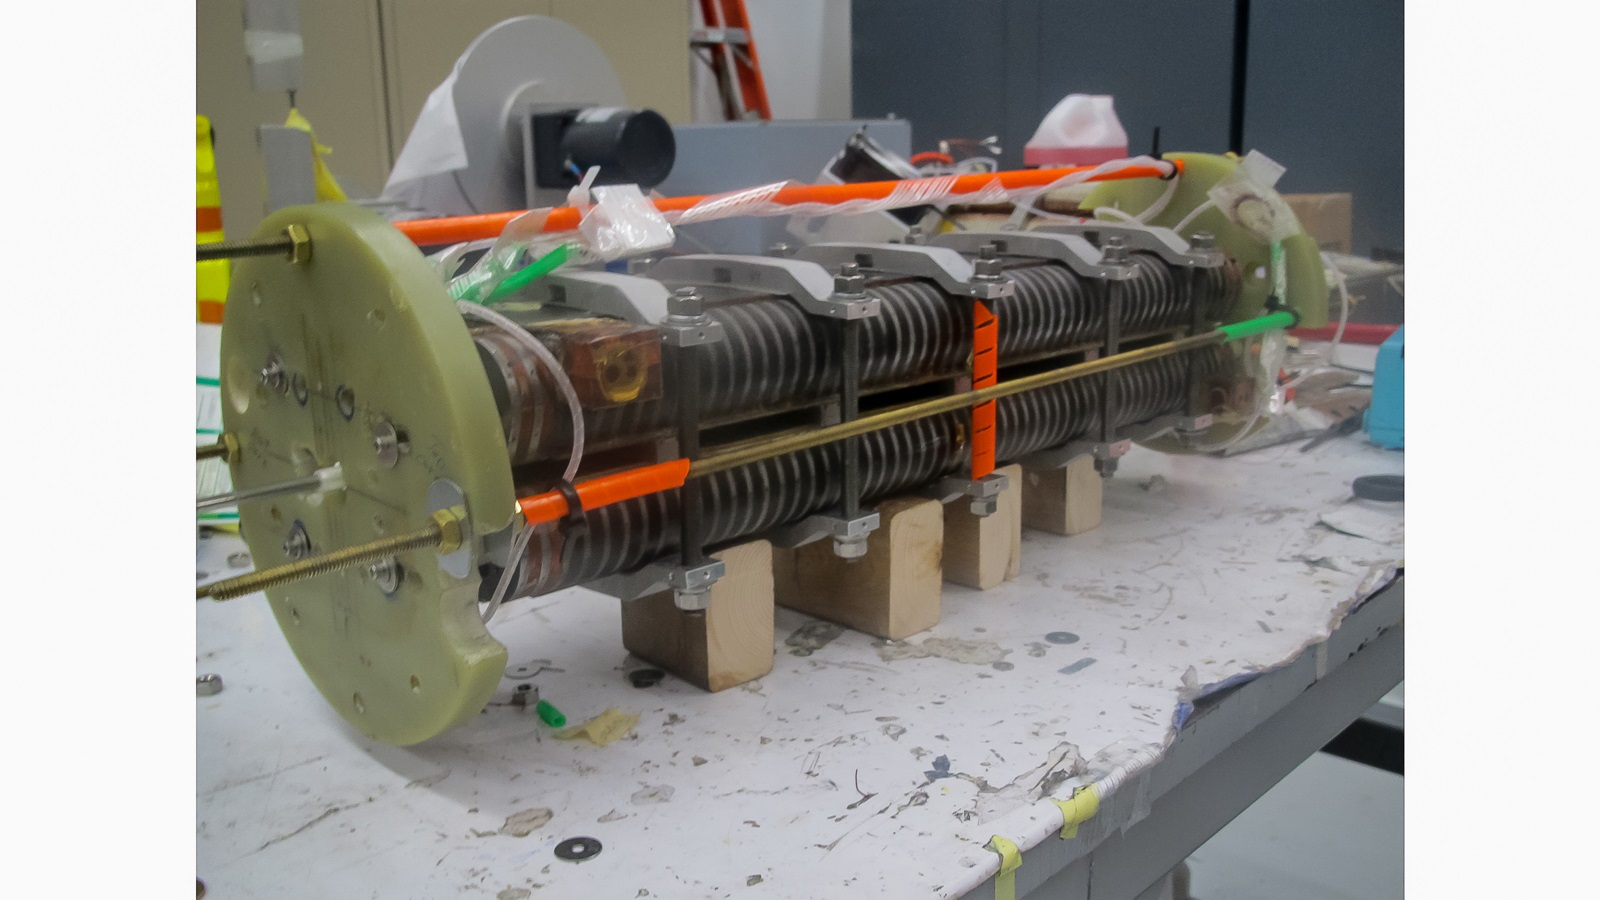 This half-meter-long prototype of a niobium-tin superconducting undulator magnet was designed and built by a team from three U.S. Department of Energy National Laboratories. The next step will be to build a meter-long version and install it at the Advanced Photon Source at Argonne.